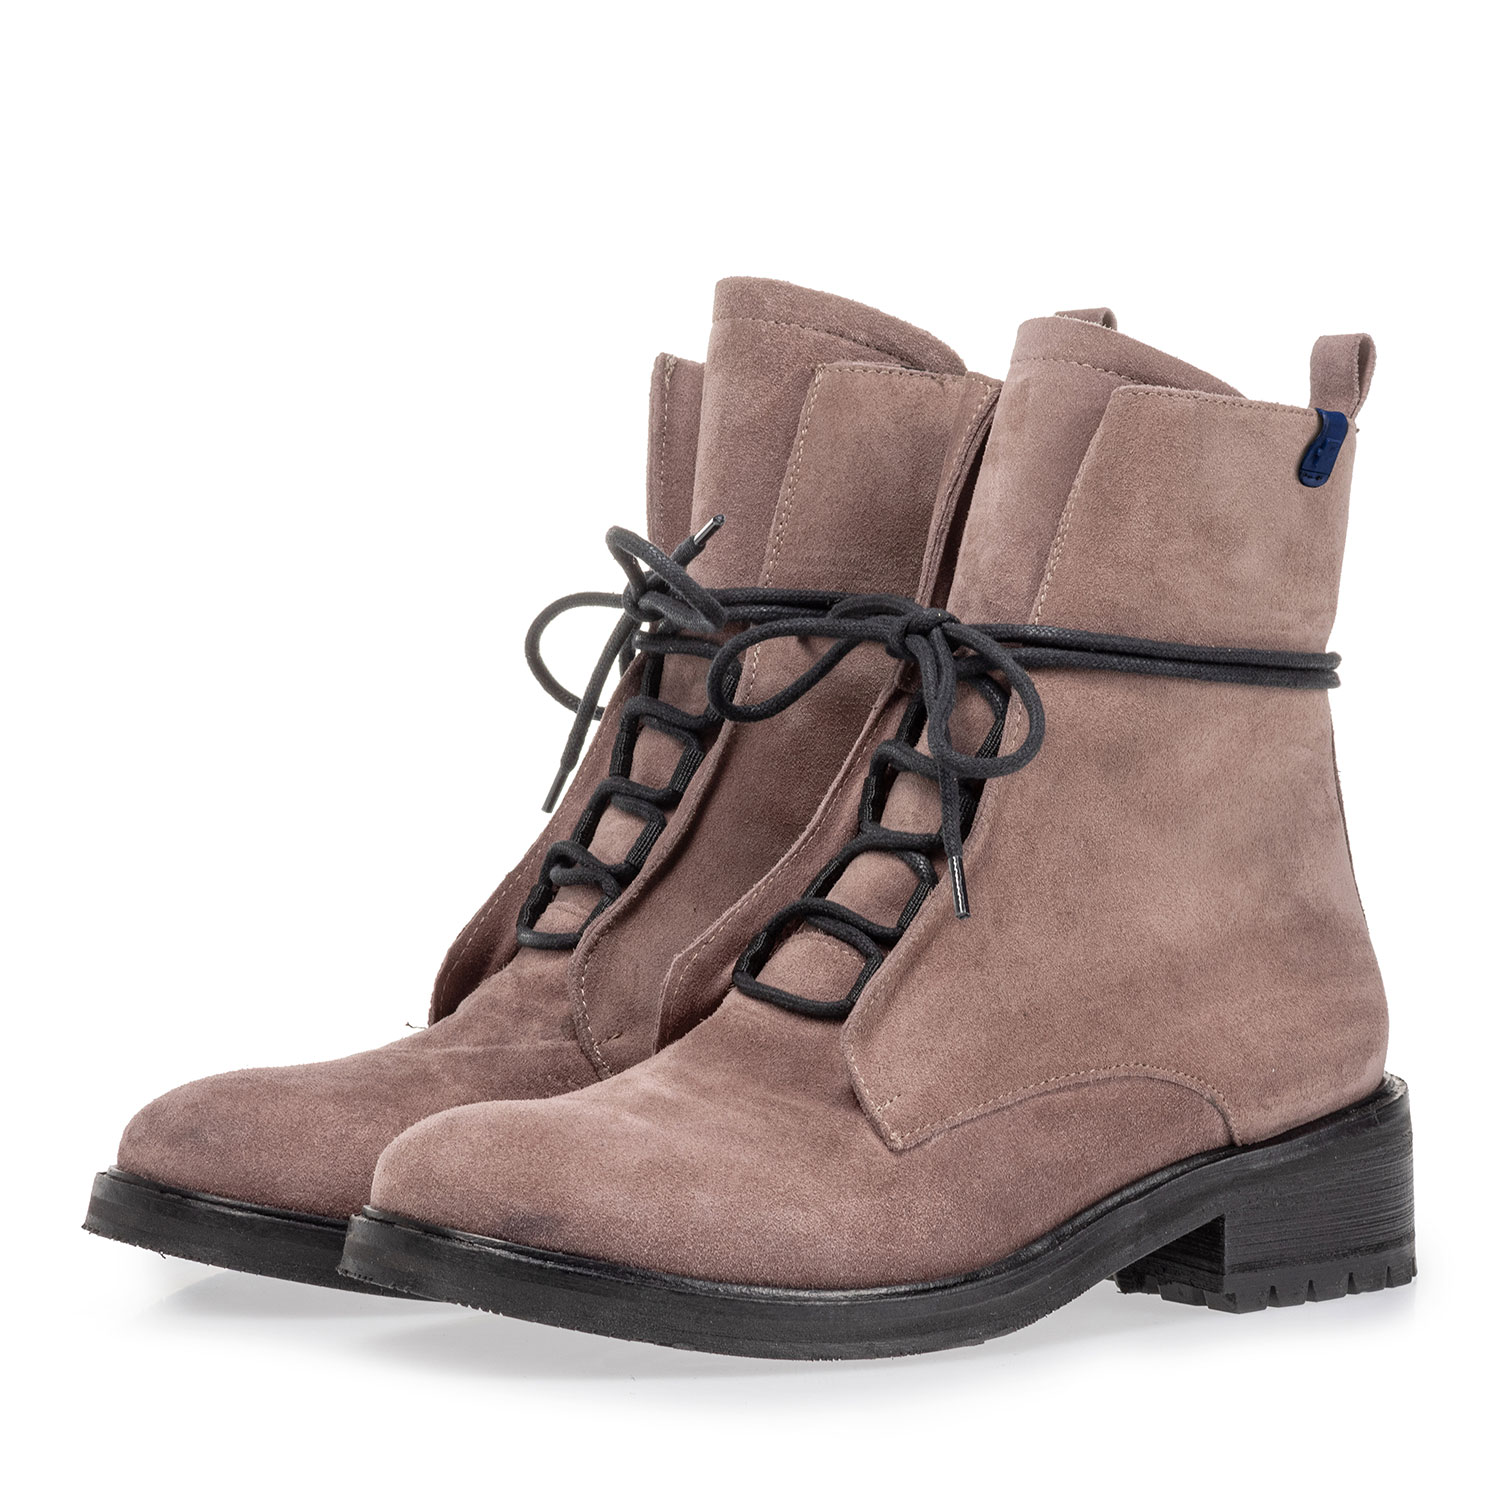 85647/03 - Lace boot suede leather dark pink